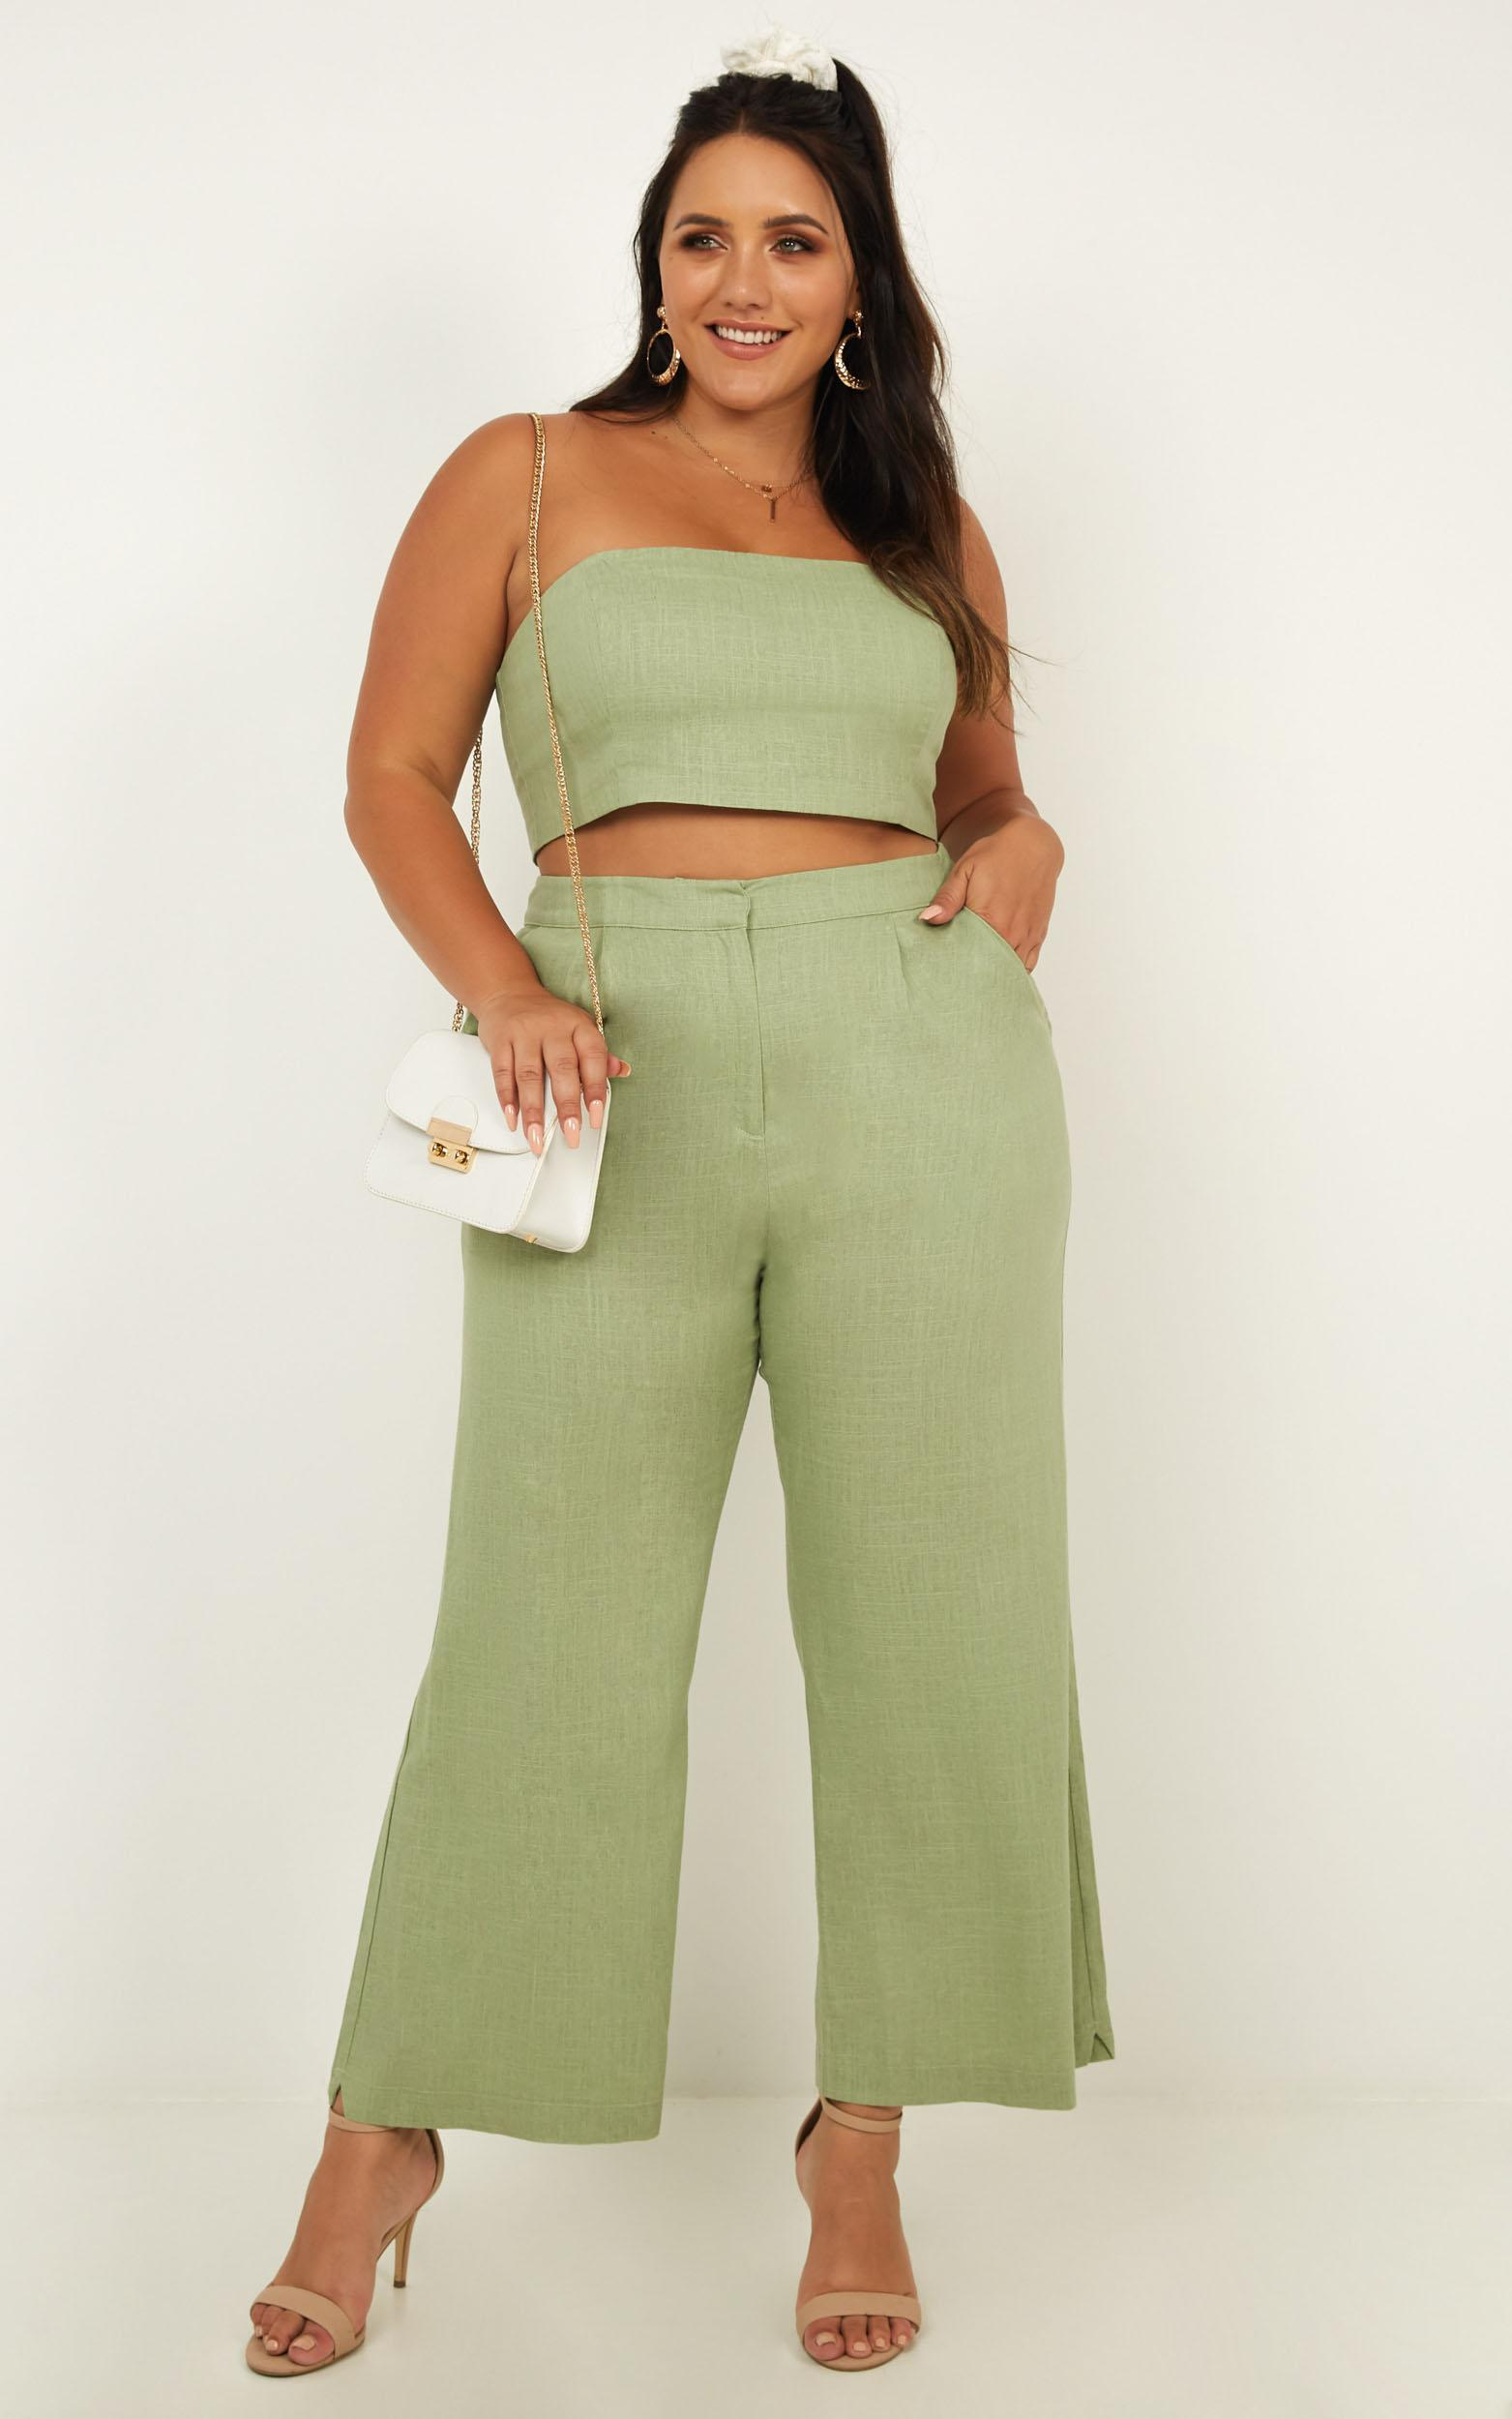 North Street Two Piece Set In sage linen look - 18 (XXXL), Sage, hi-res image number null